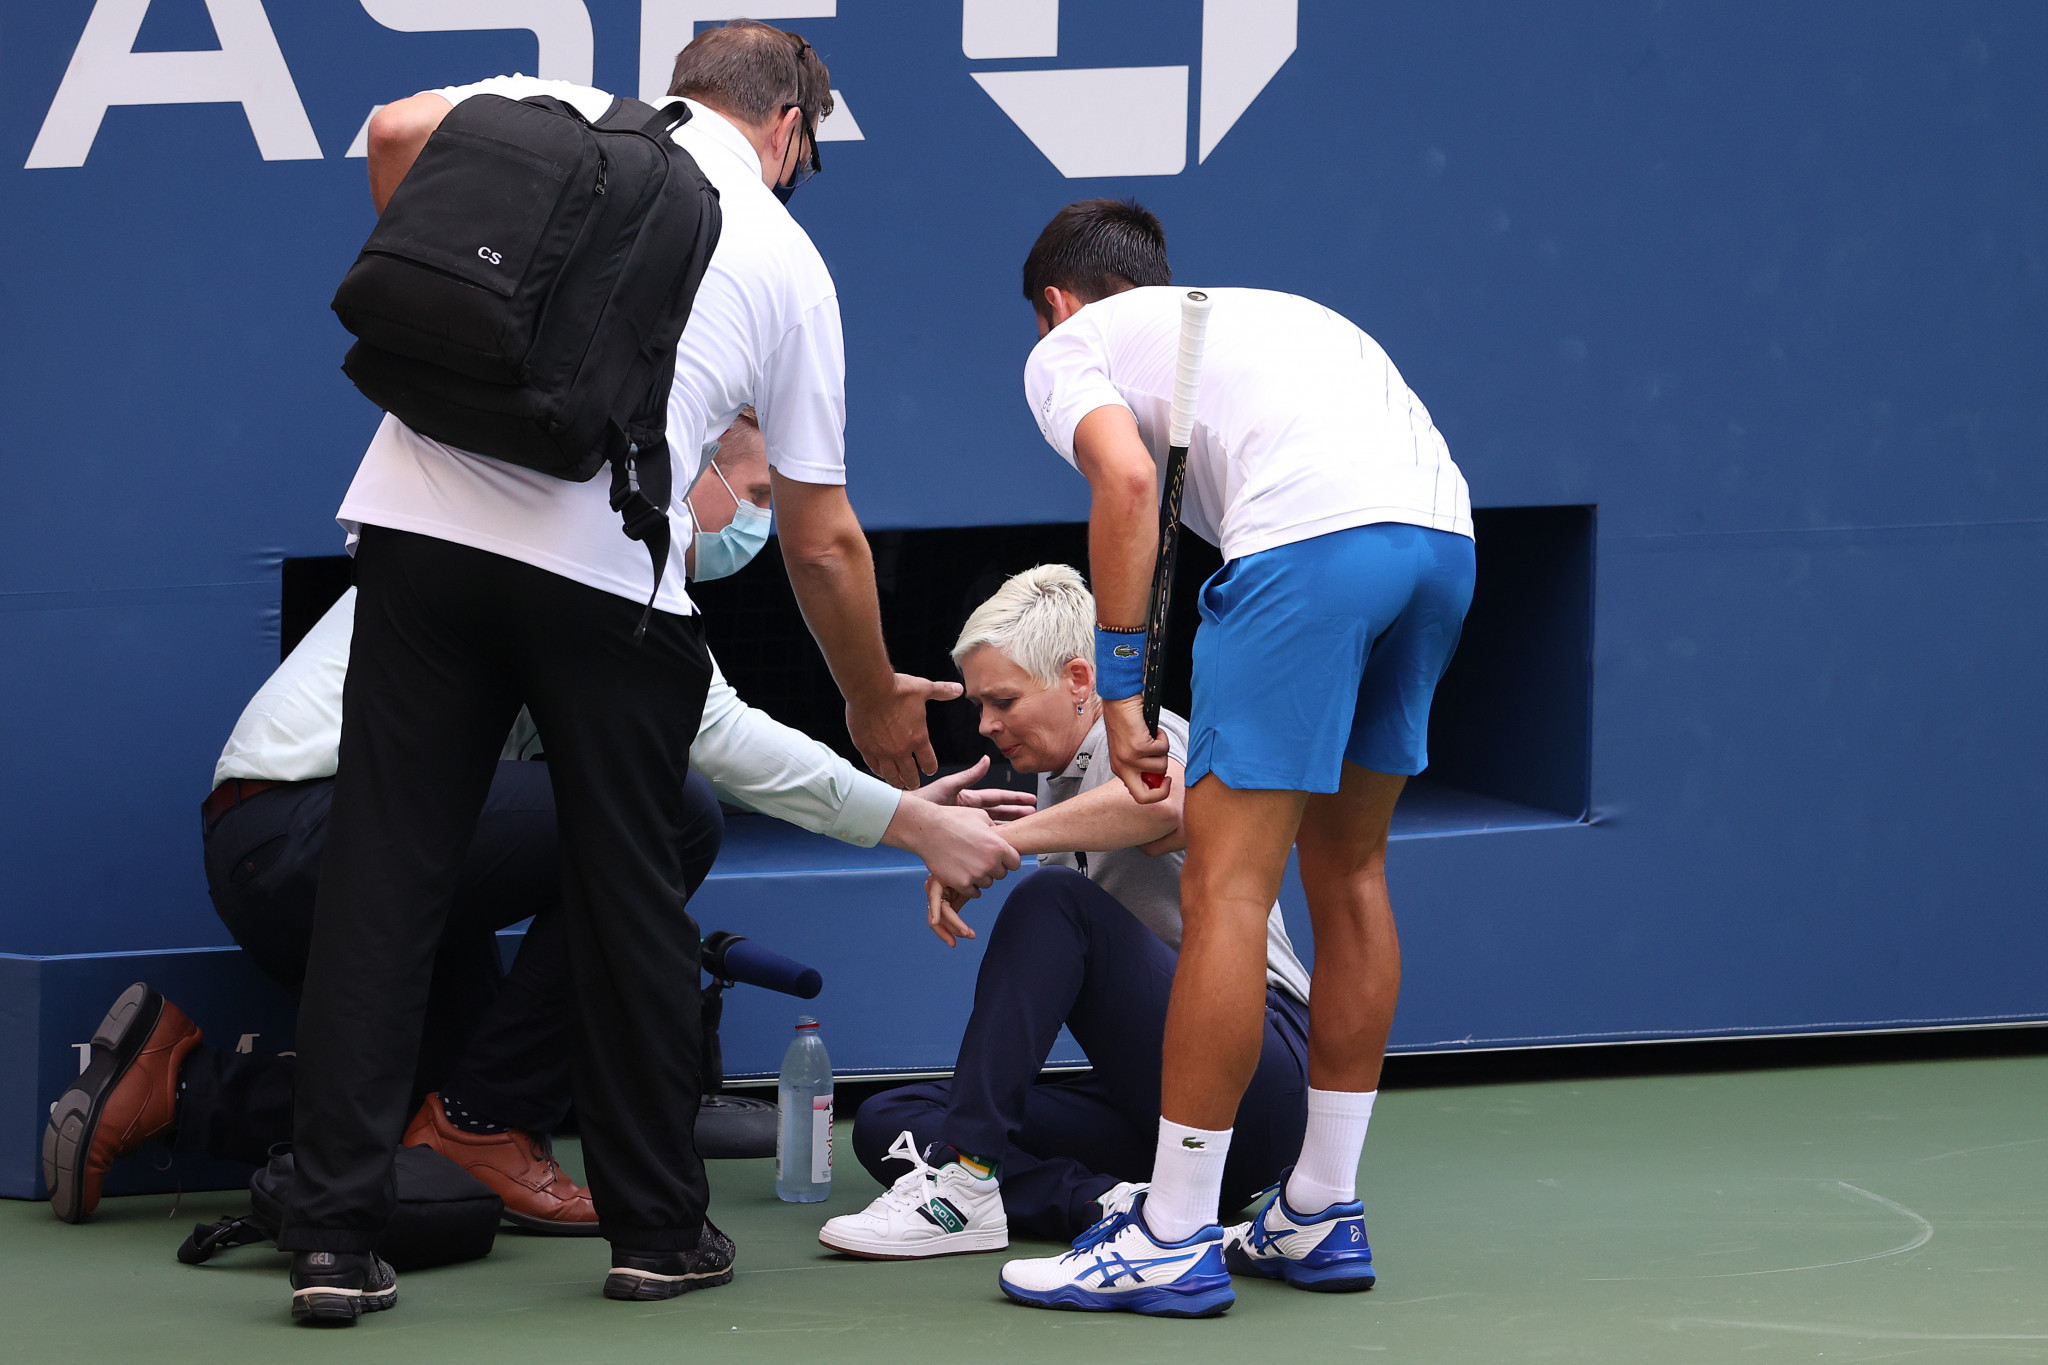 Novak Djokovic helps a line judge after he inadvertently struck her with a ball at the US Open ©Getty Images